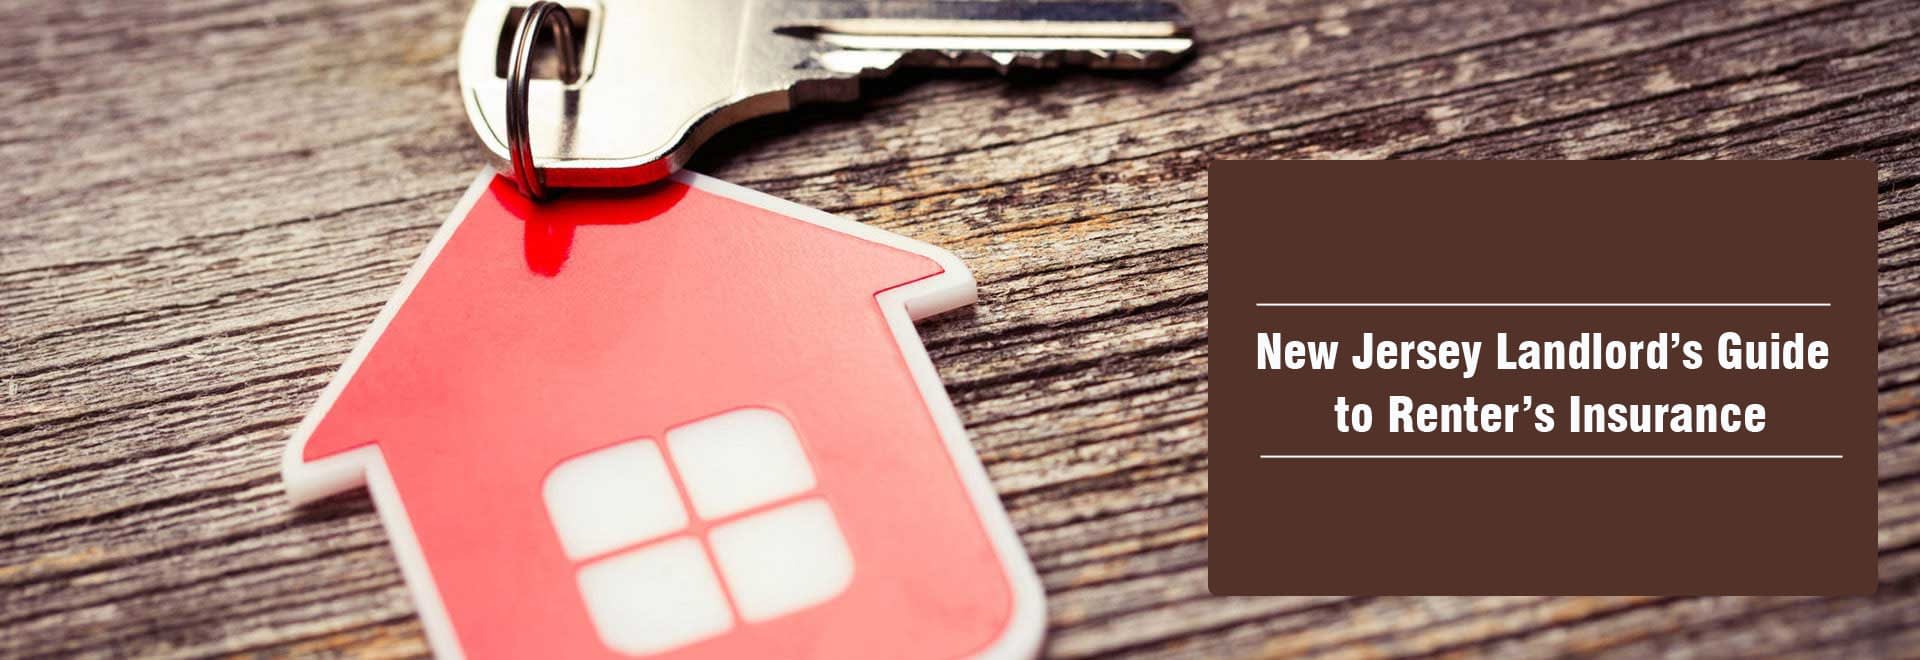 New Jersey Landlord's Guide to Renter's Insurance